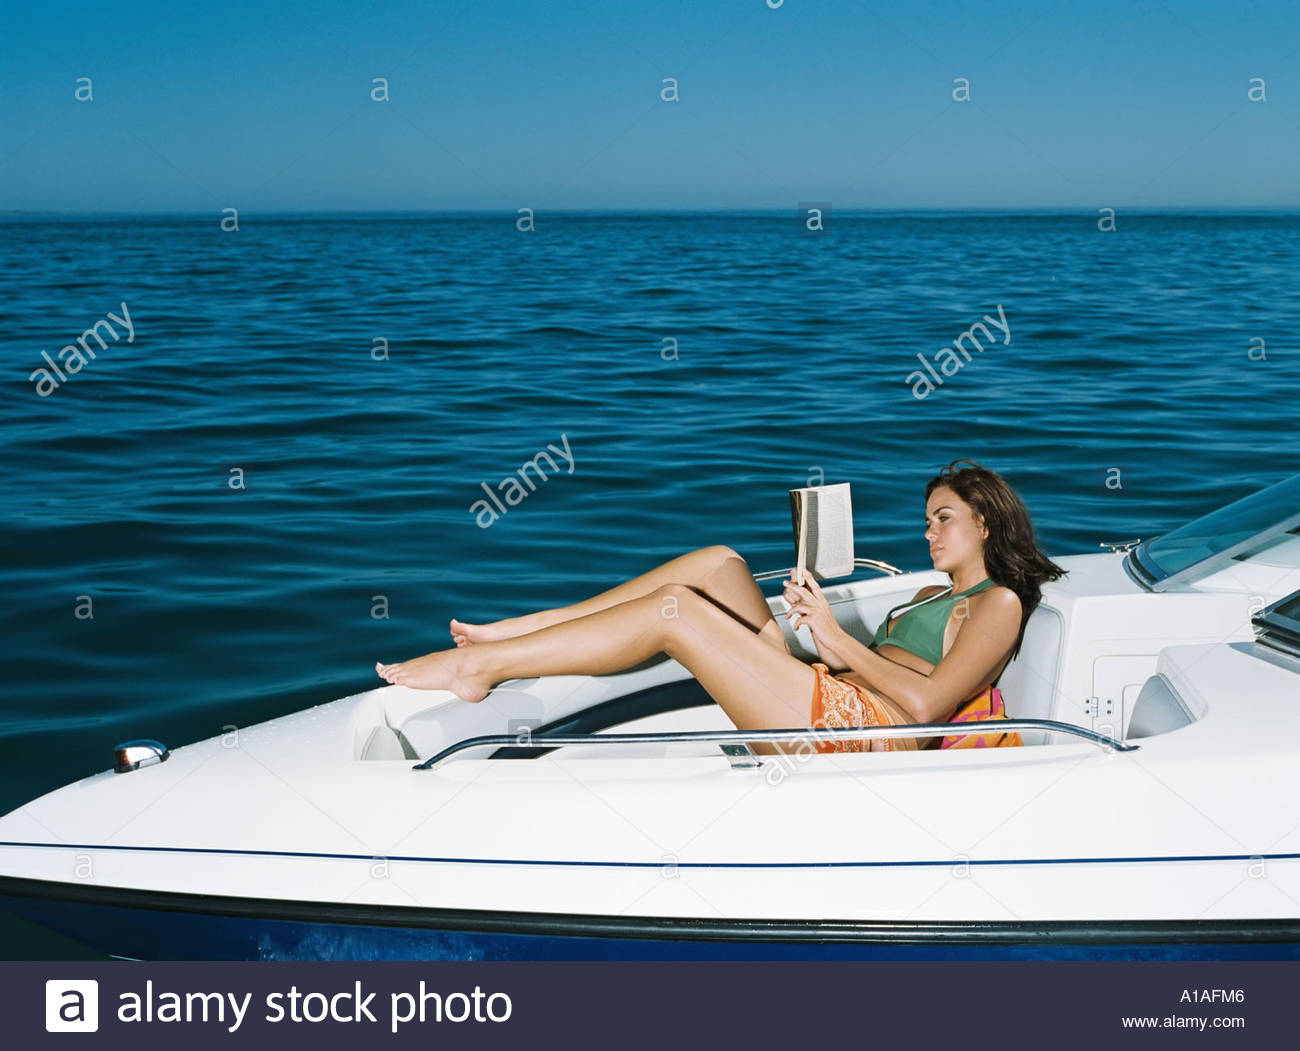 Woman on speedboat reading a book - Stock Image